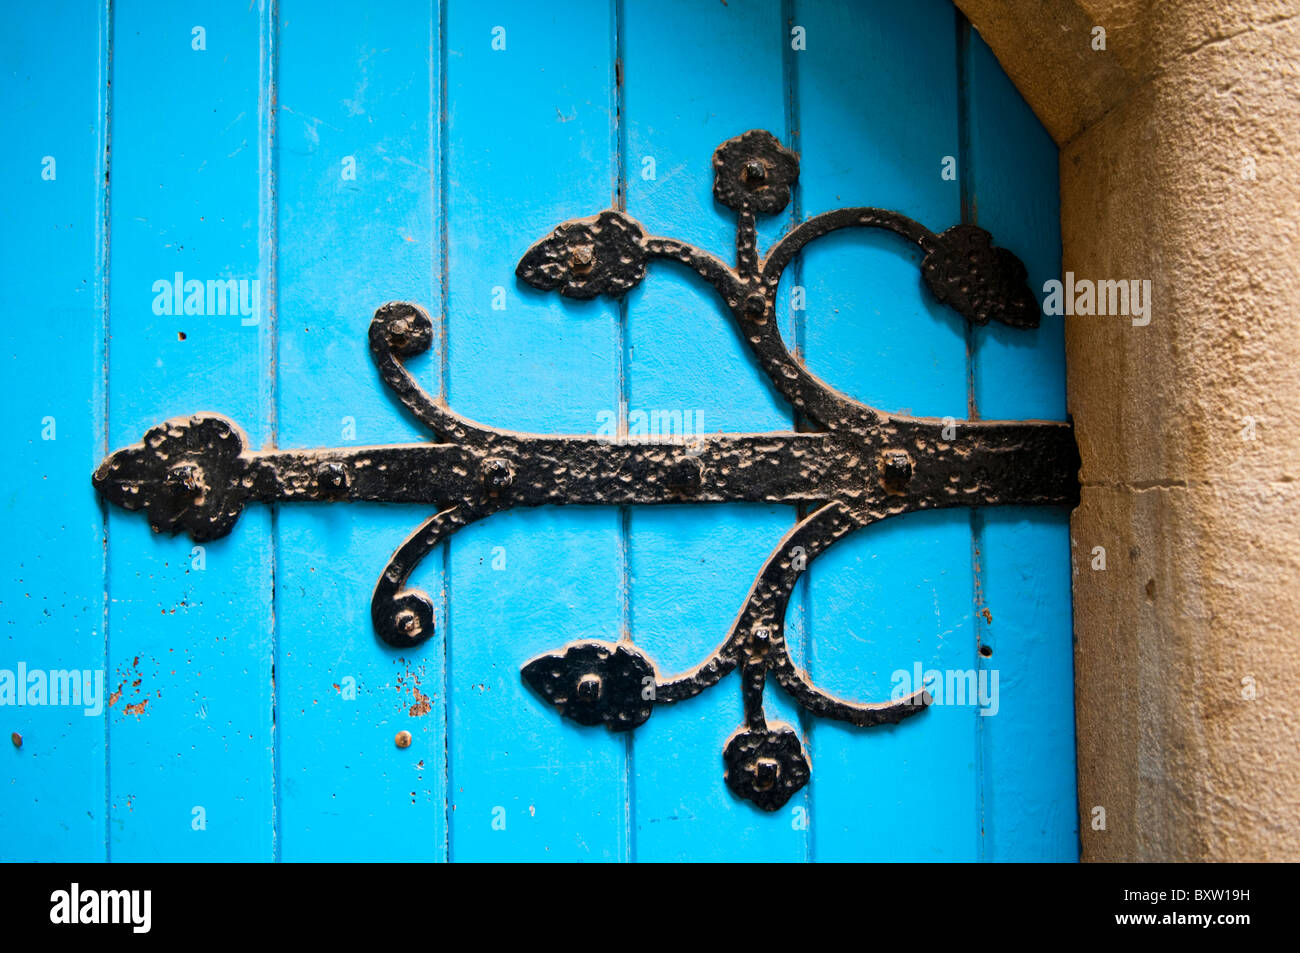 Ornate hinge bracket on a church door - Stock Image